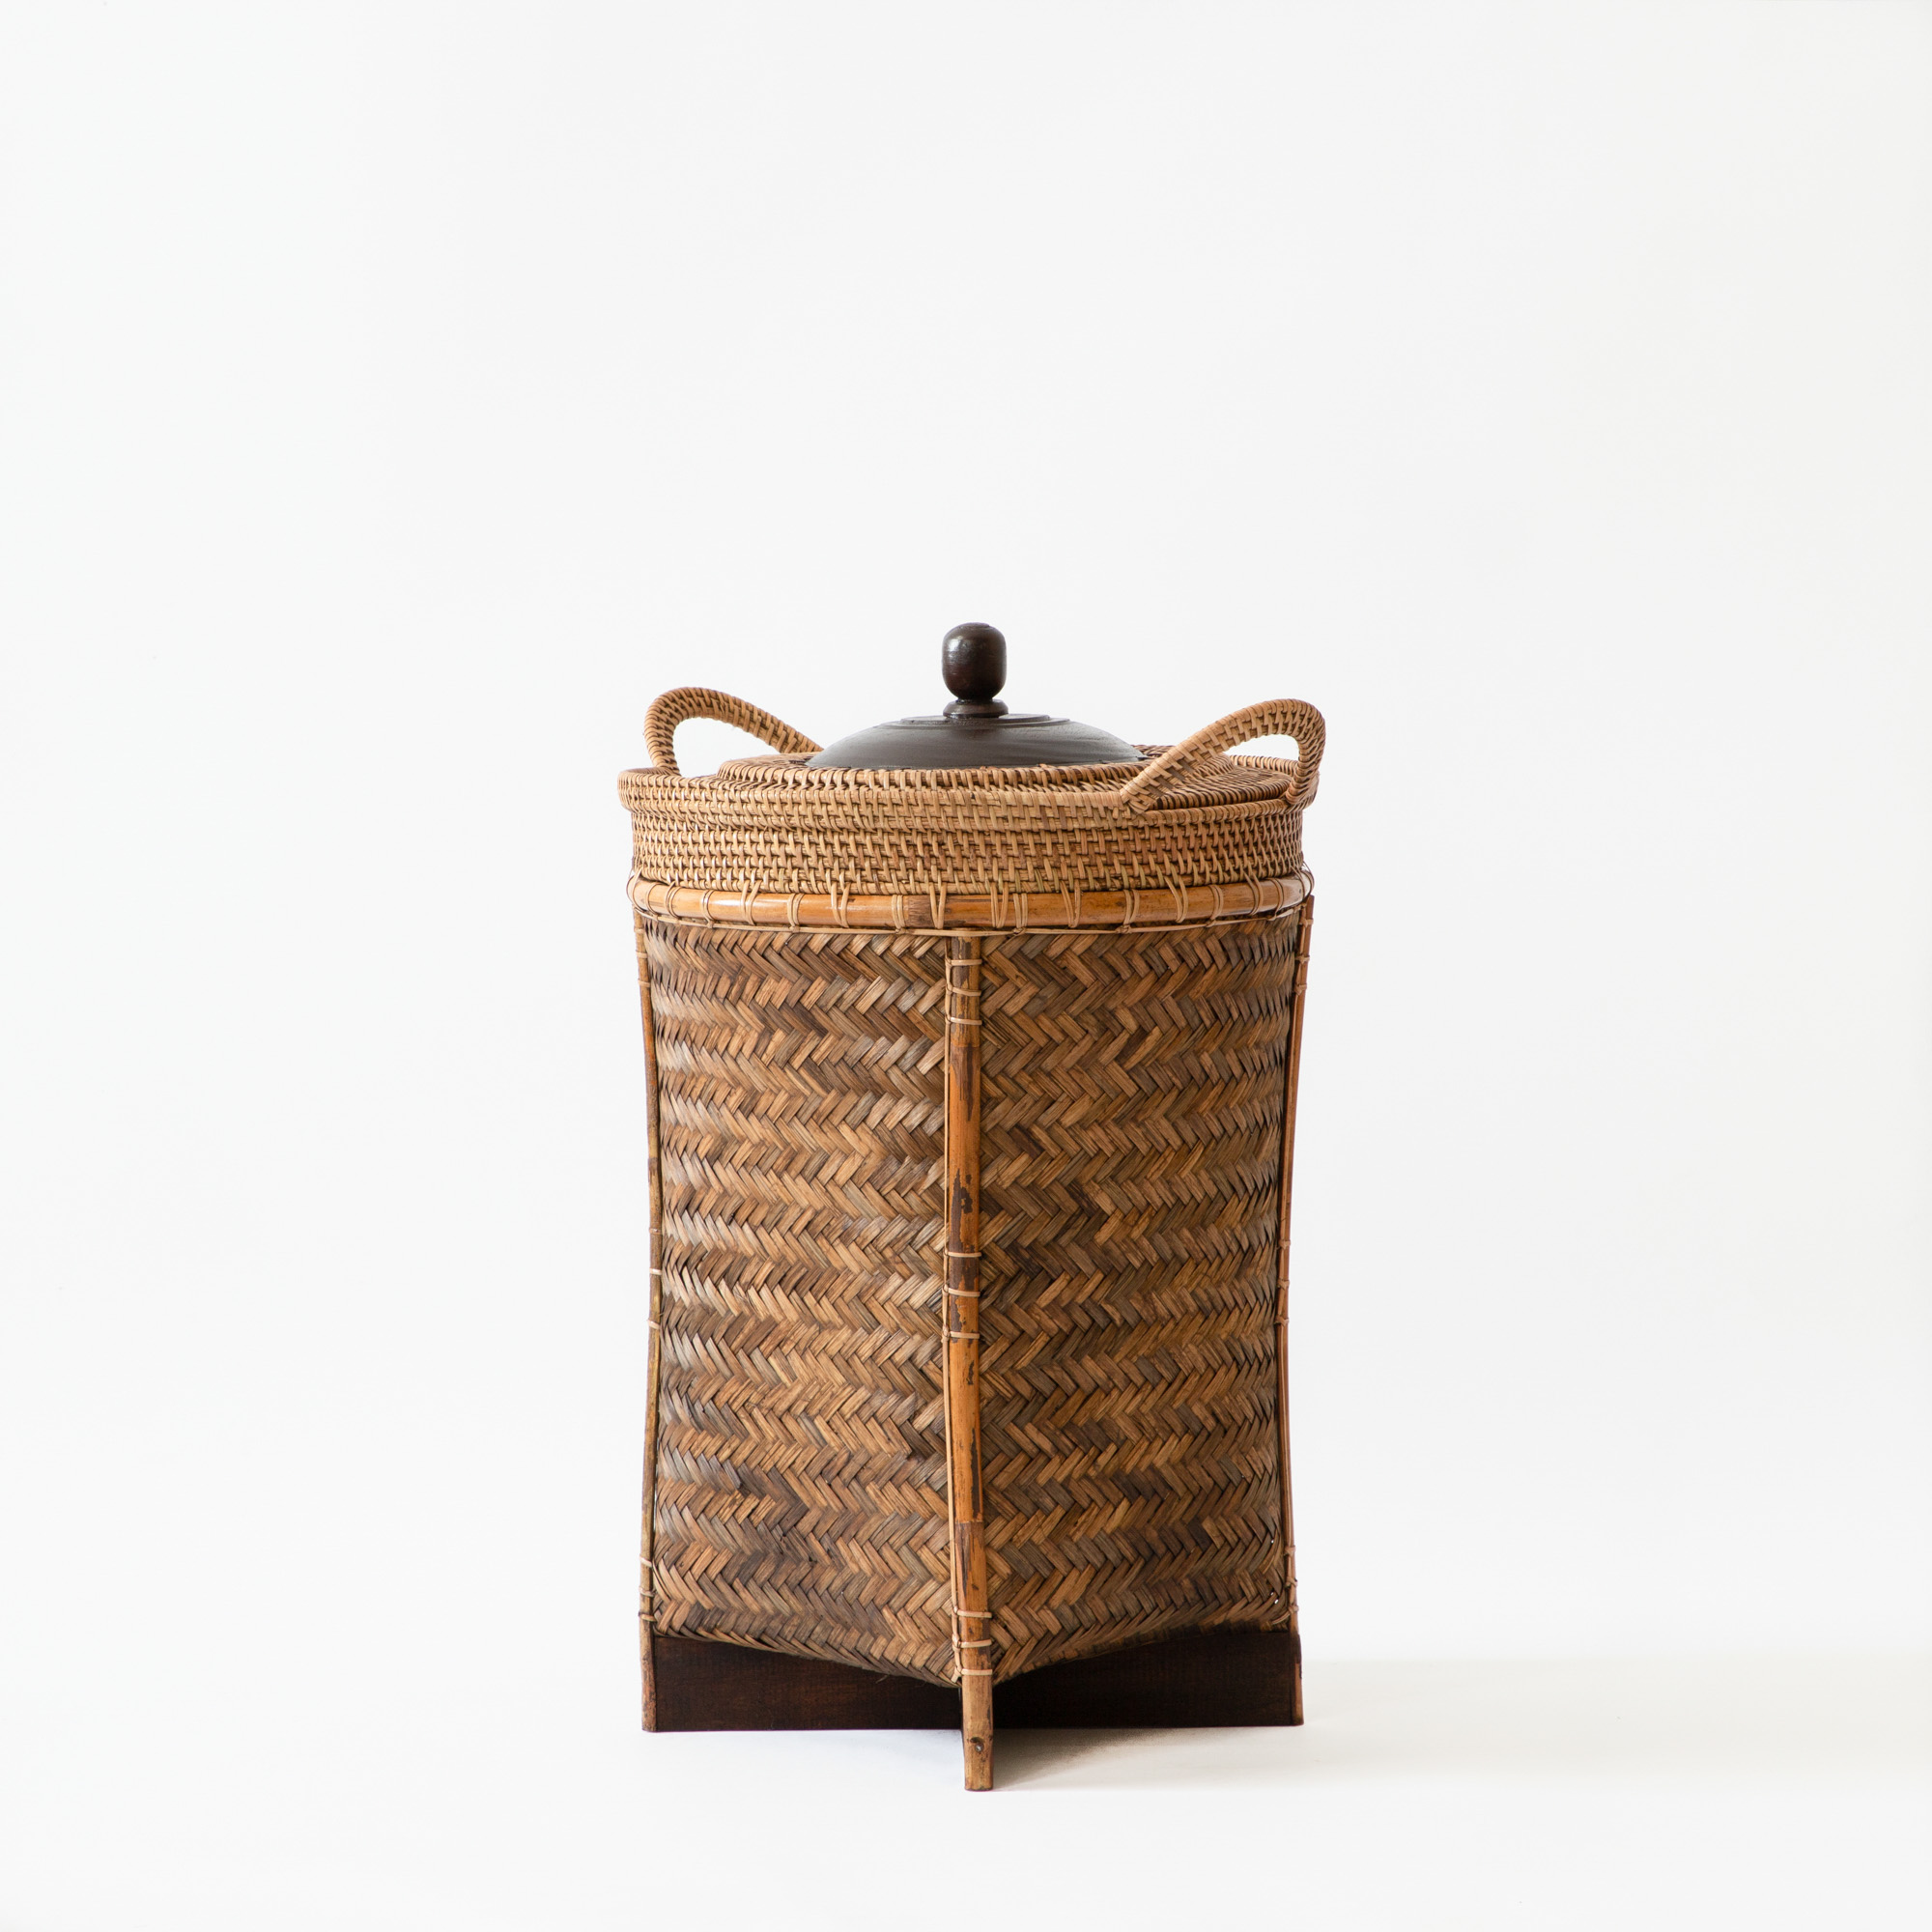 Square Bottomed Borneo Storage Basket with Lid and Knob